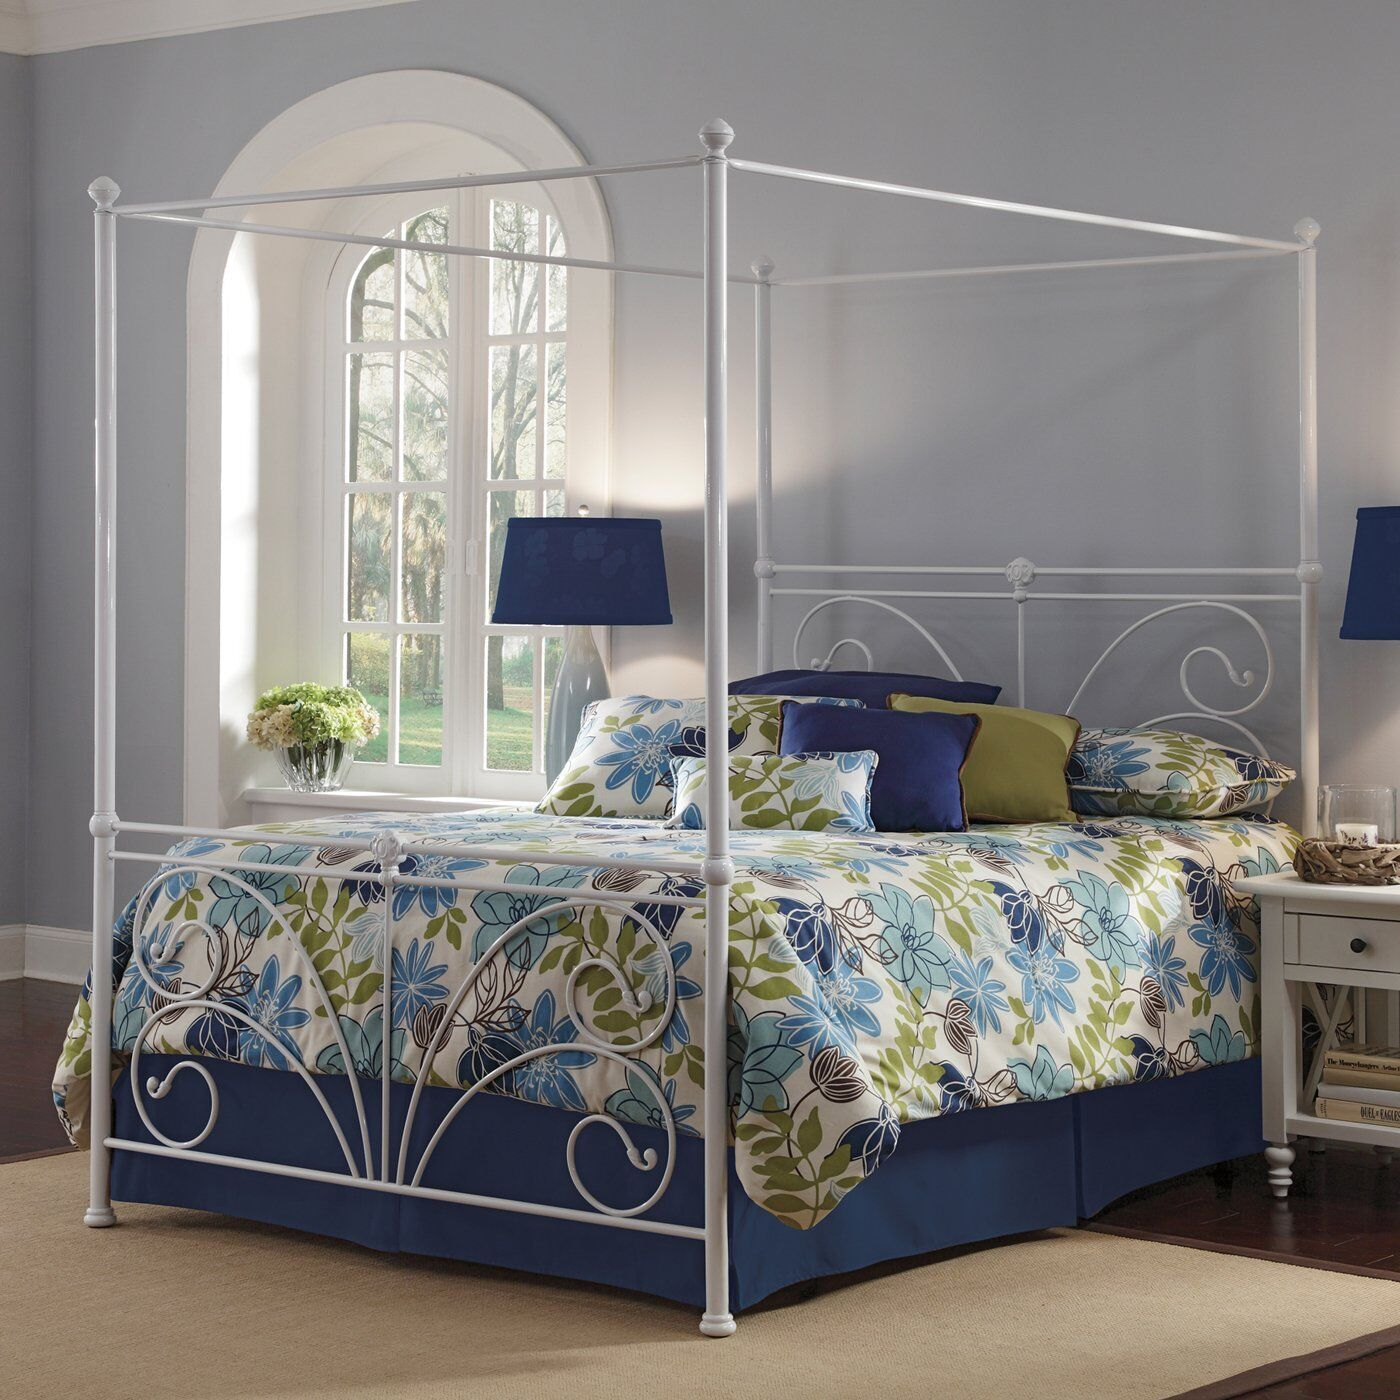 Canopy Bed Frame Full Size Canopy Bed Frame Rainwear